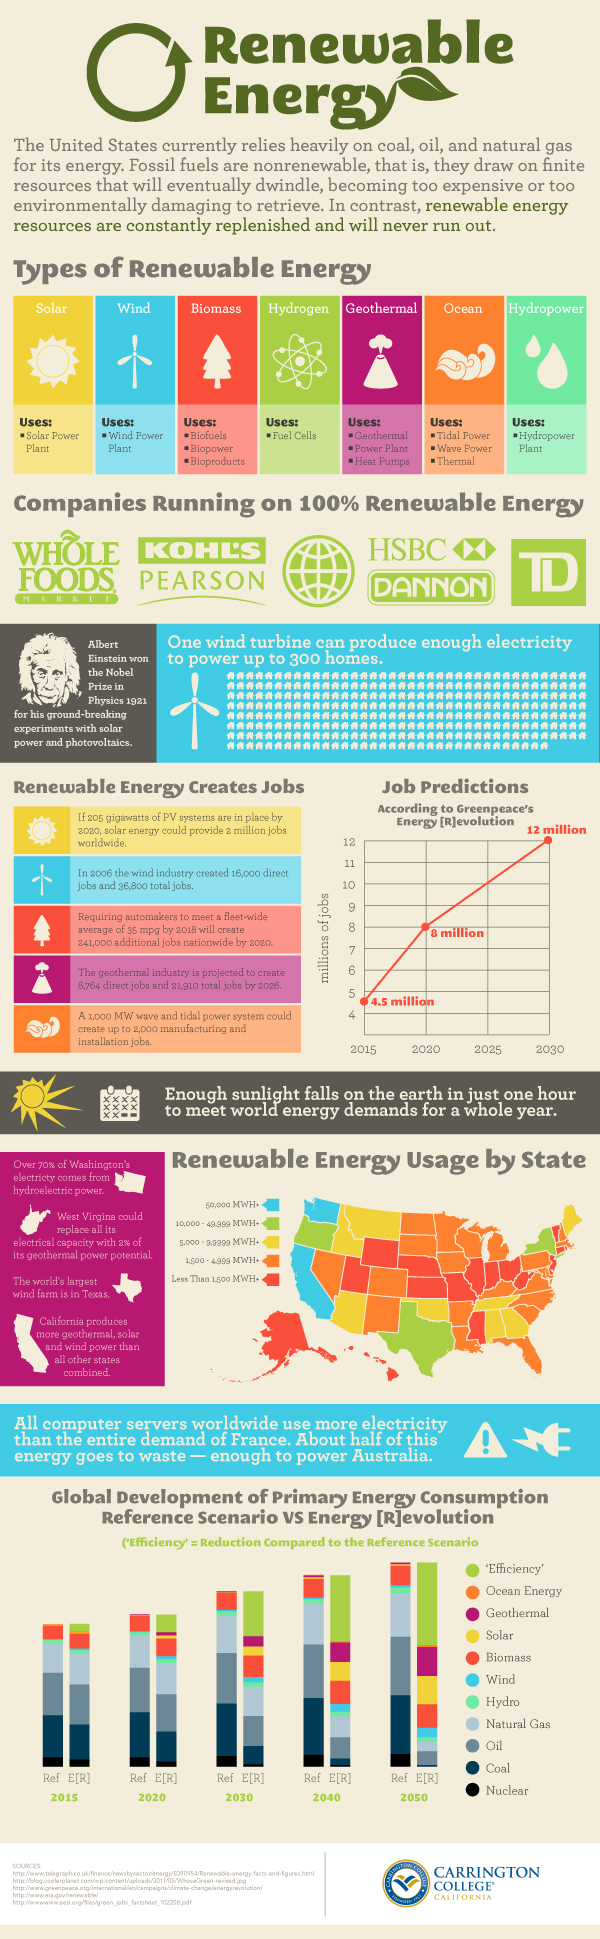 Understanding Renewable Energy 50 Good Names for Energy Companies